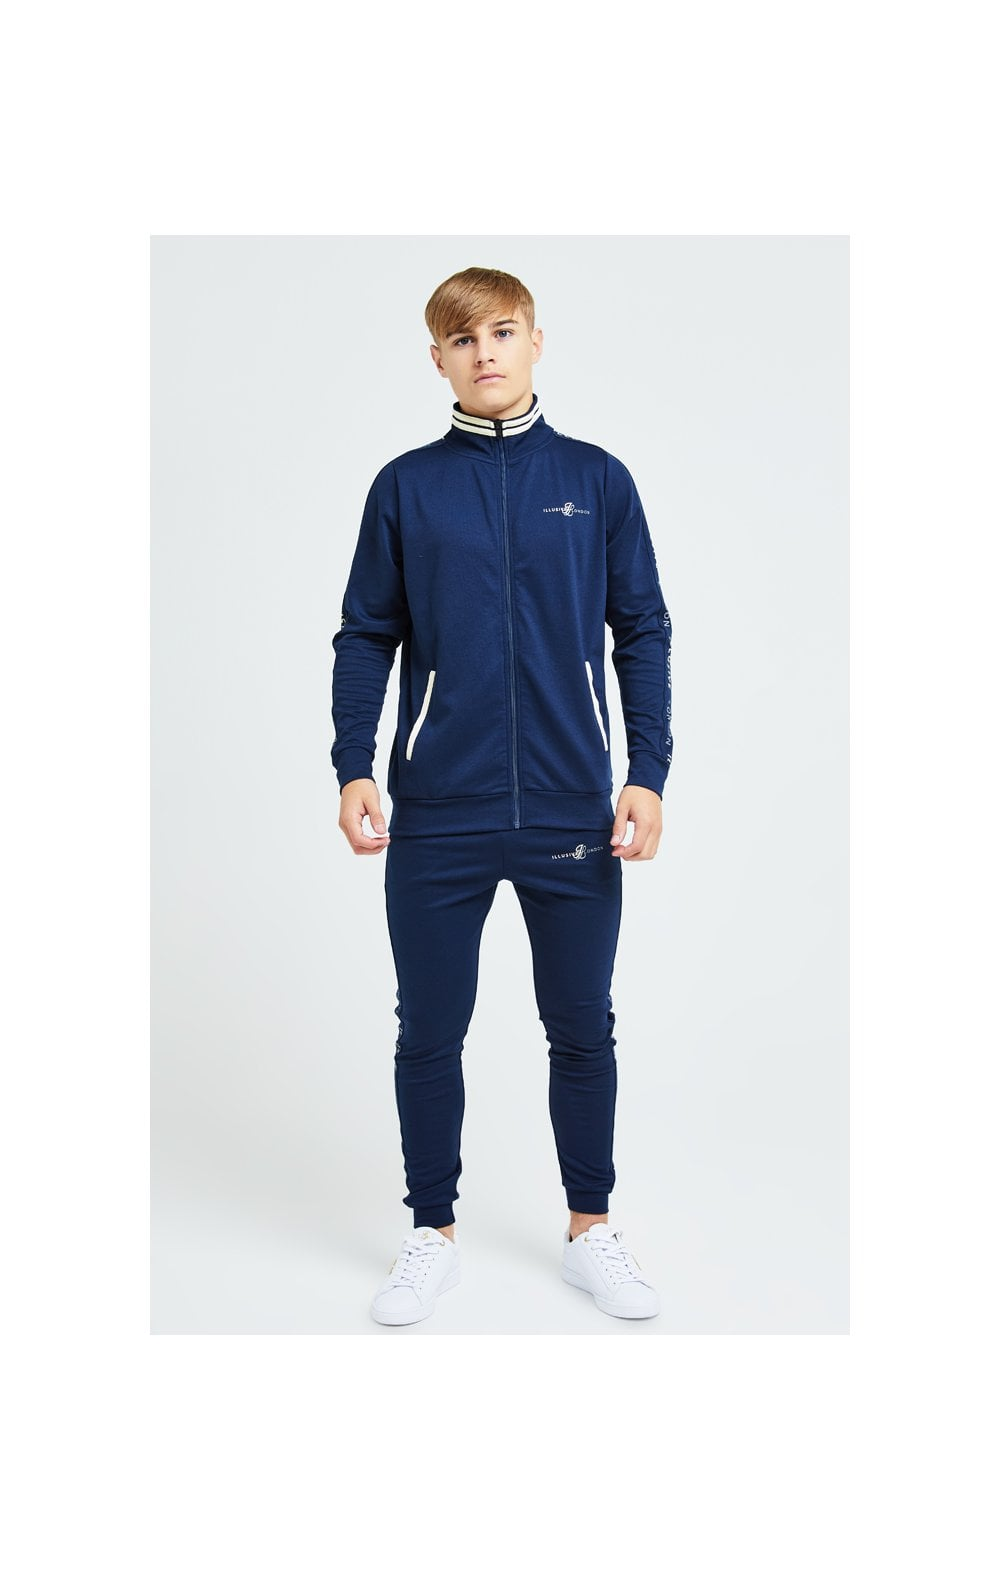 Illusive London Legacy Track Top - Navy & Cream (4)